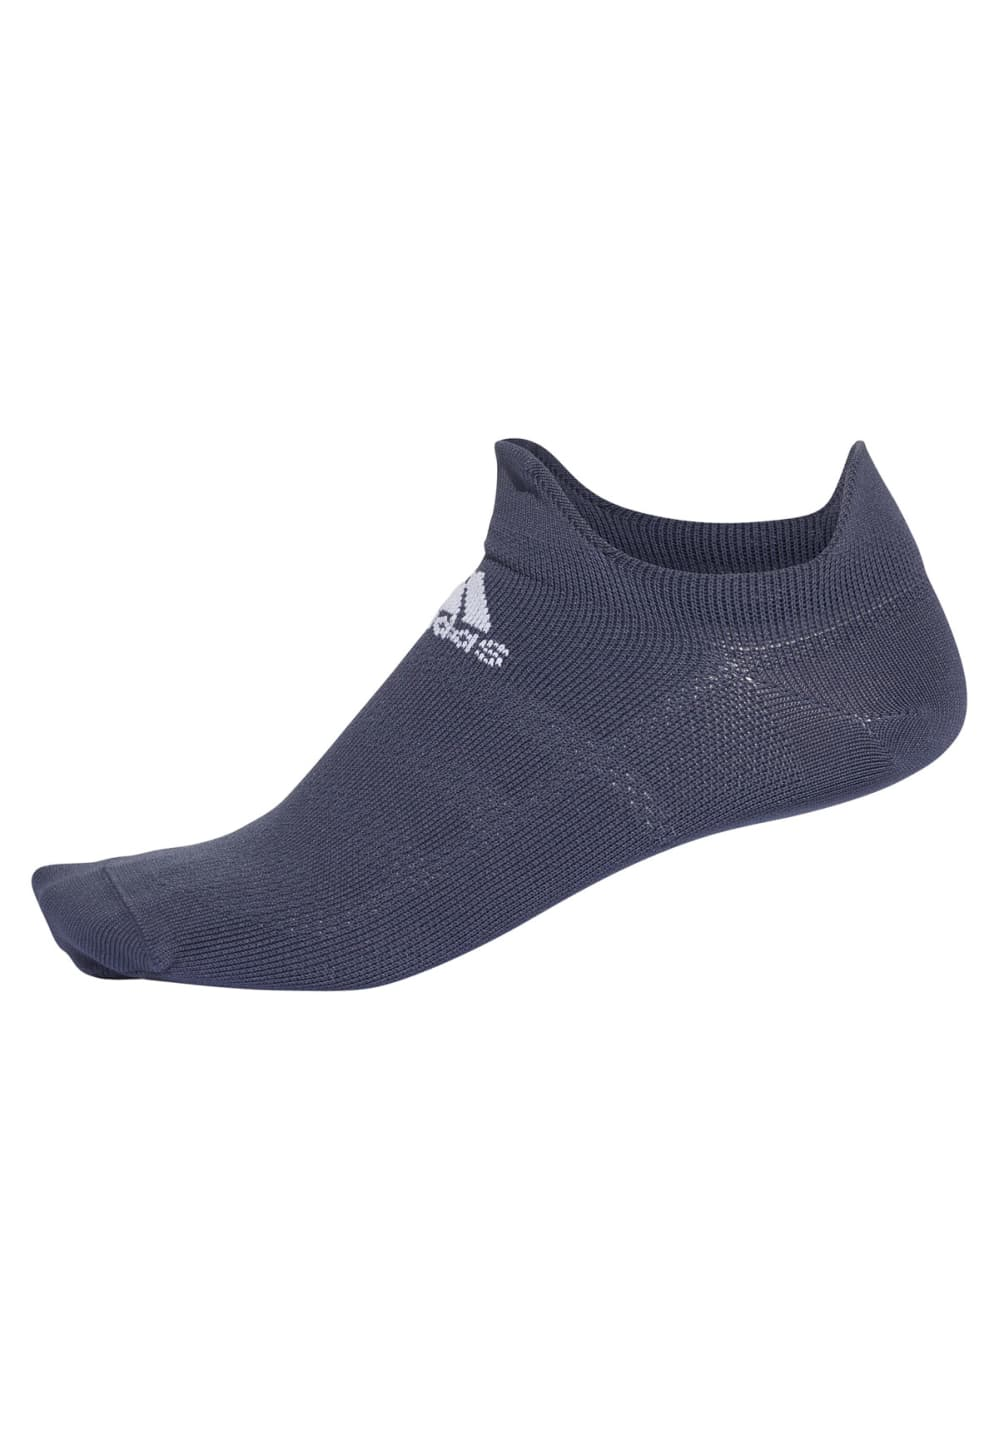 adidas Alphaskin Ultralight No show Socken Running socks Blue